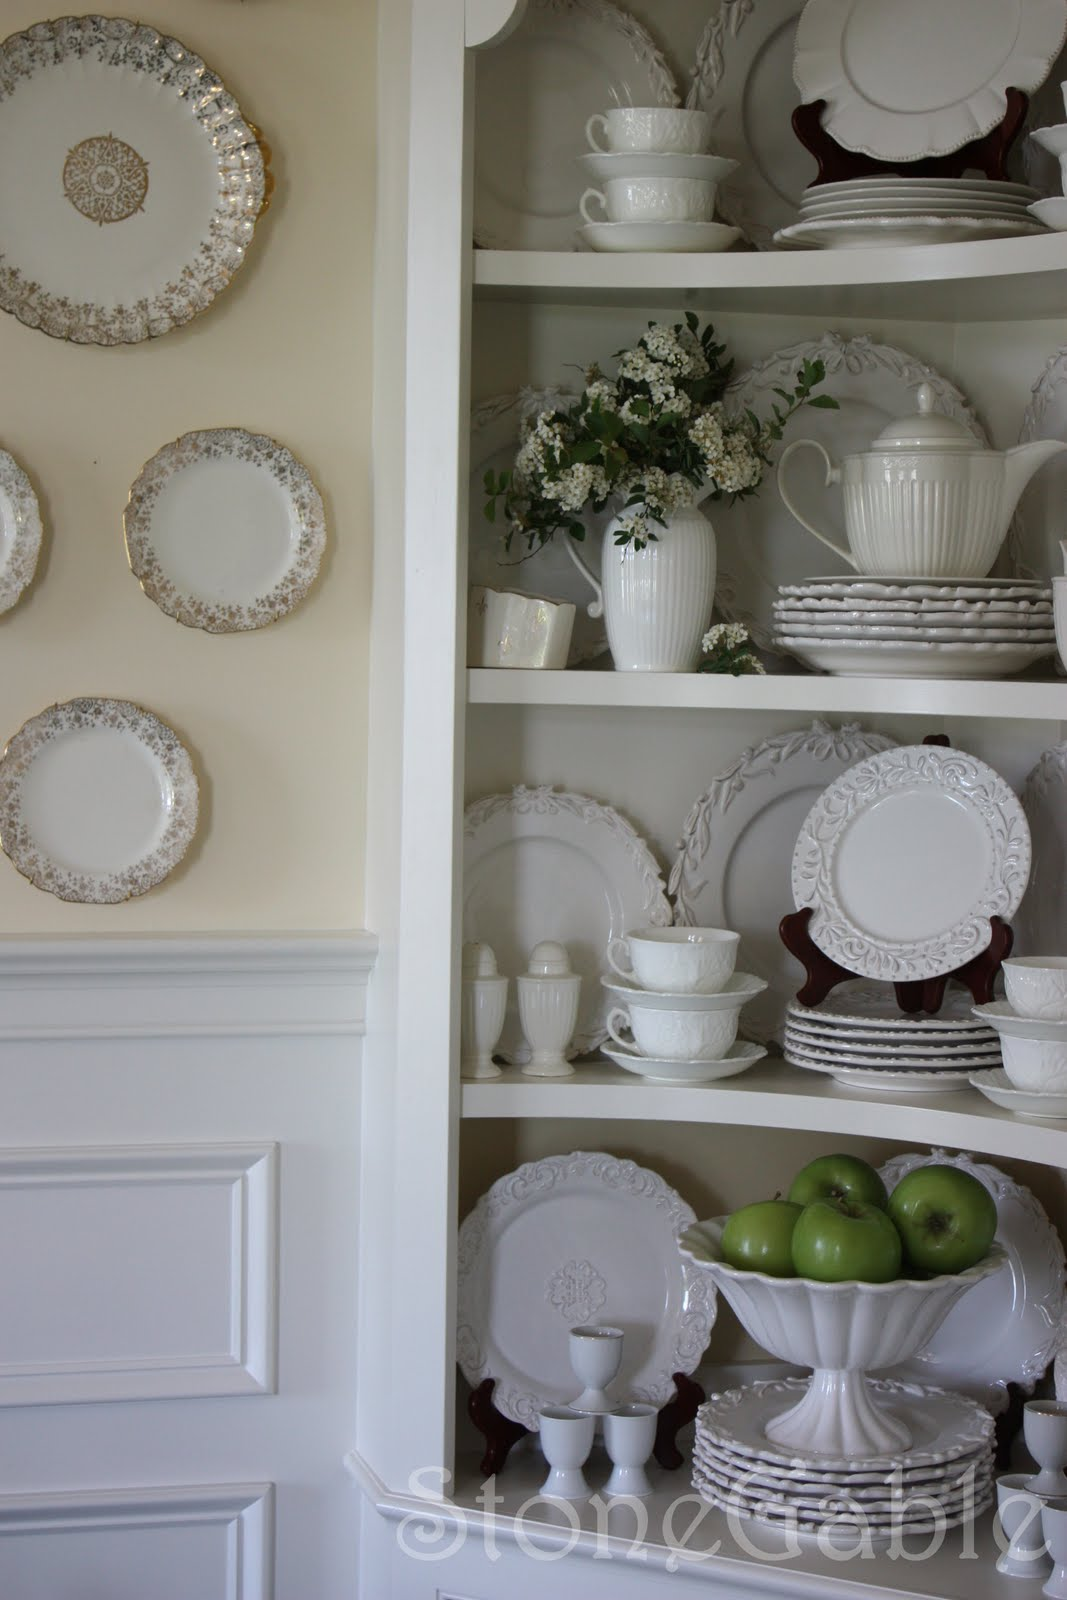 How To Display Bowls Summer Cupboard Stonegable